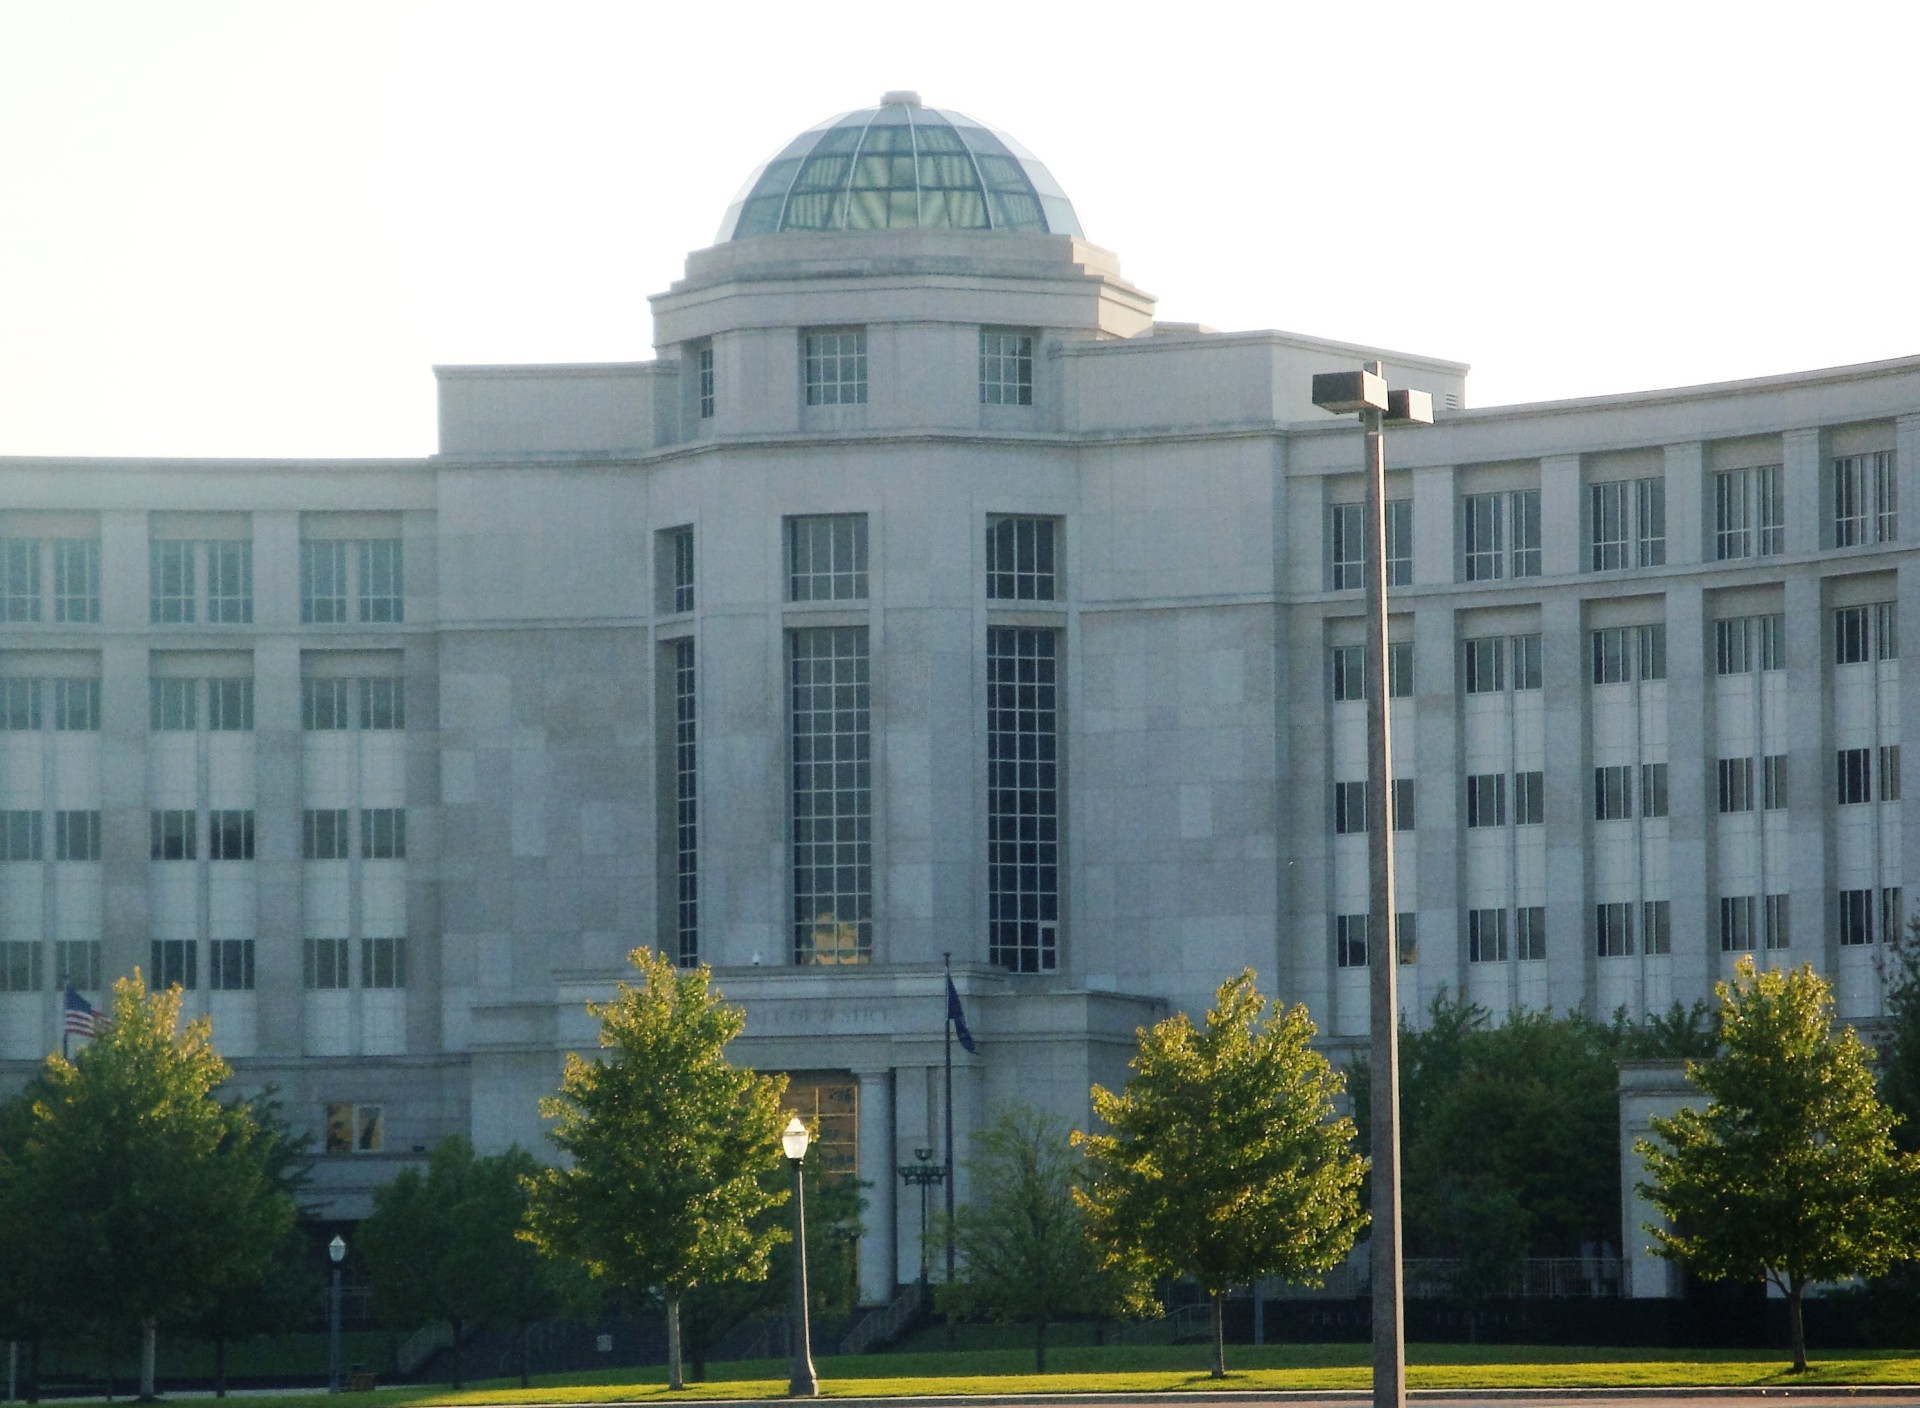 High court to hear oral arguments in 5 cases